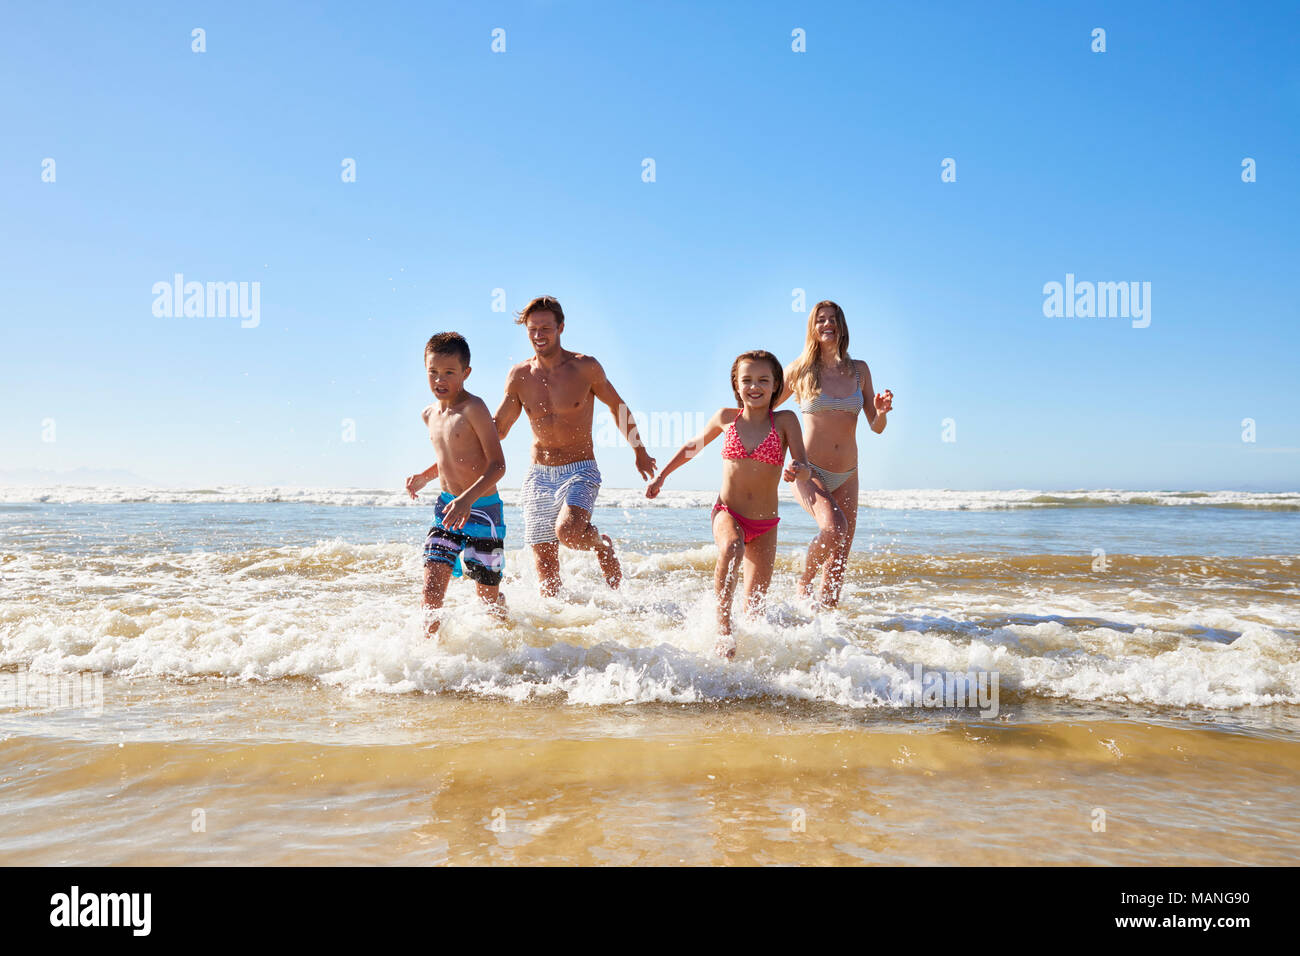 Family On Summer Beach Vacation Run Out Of Sea Towards Camera - Stock Image